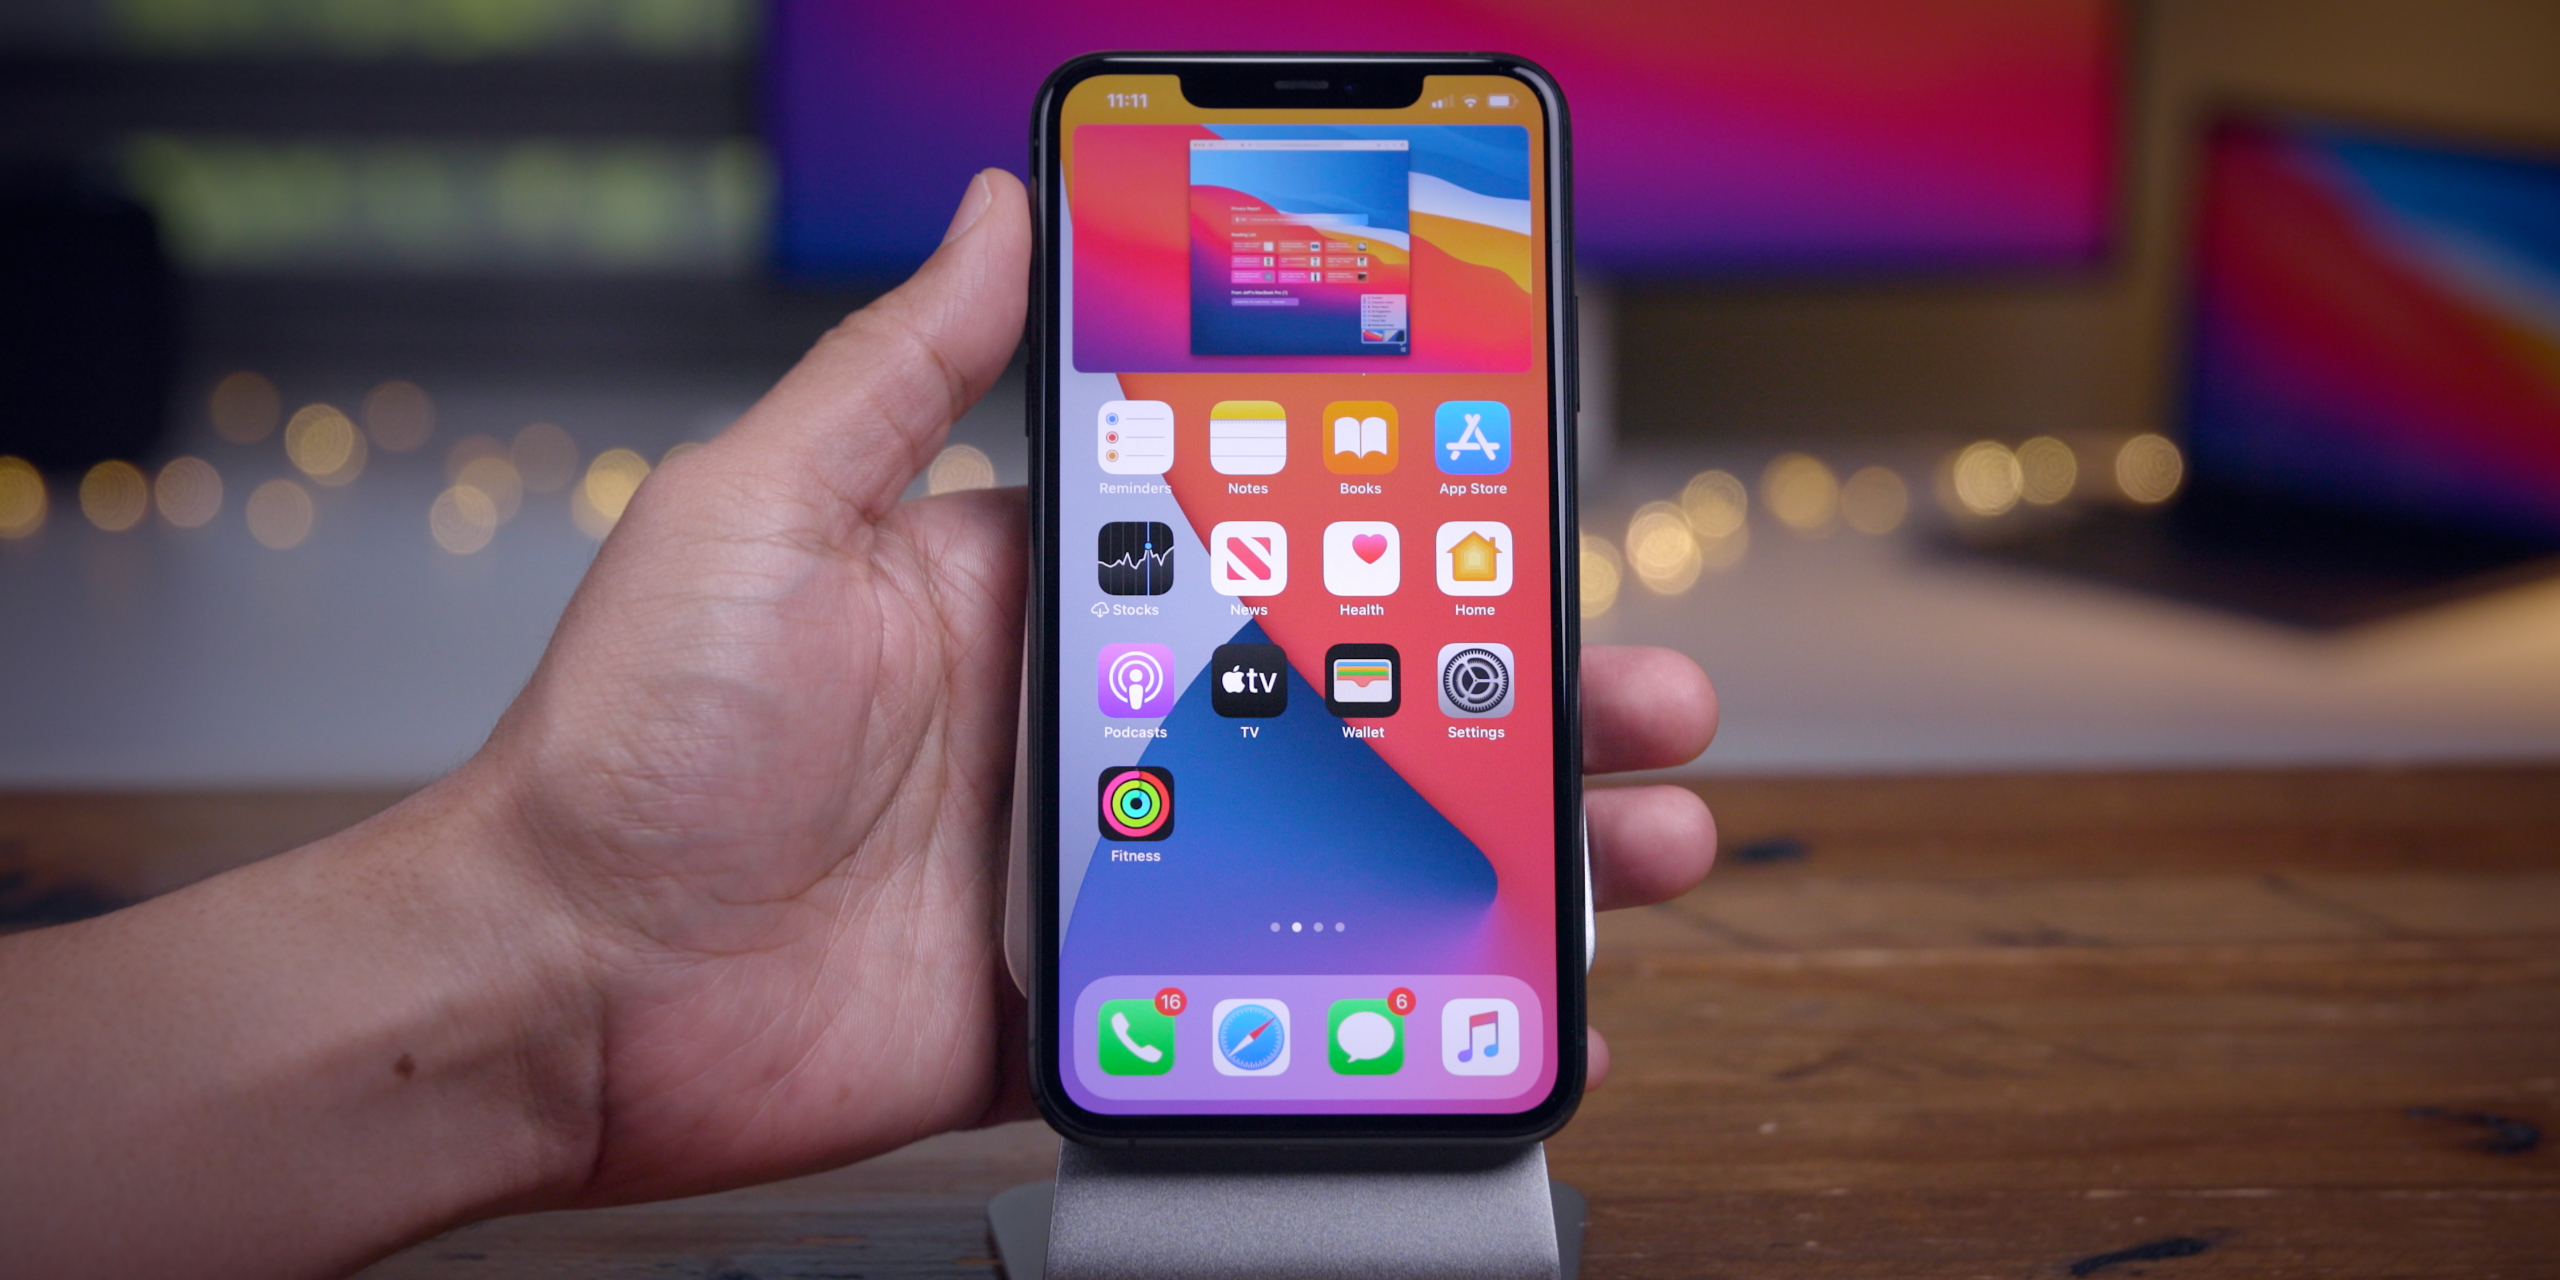 Hands-on with 50+ new iOS 14 beta 2 changes and features [Video]